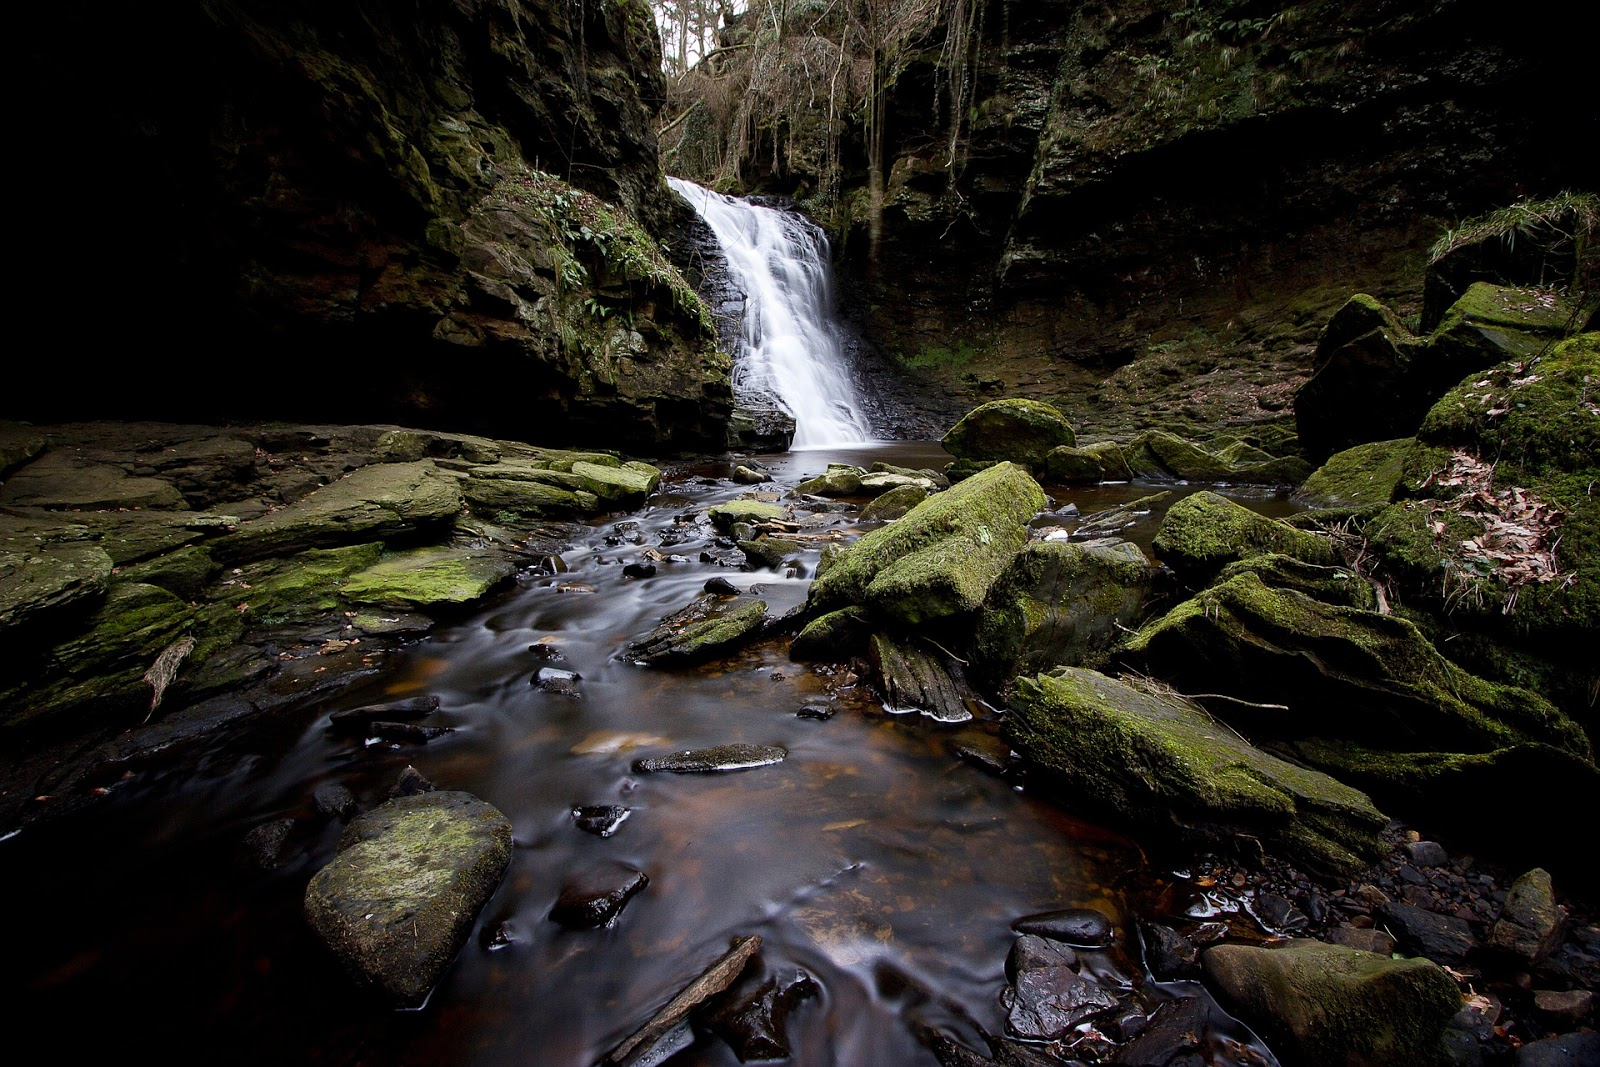 25 days out, events and things to do with kids in Northumberland National Park - Hareshaw Linn Waterfall